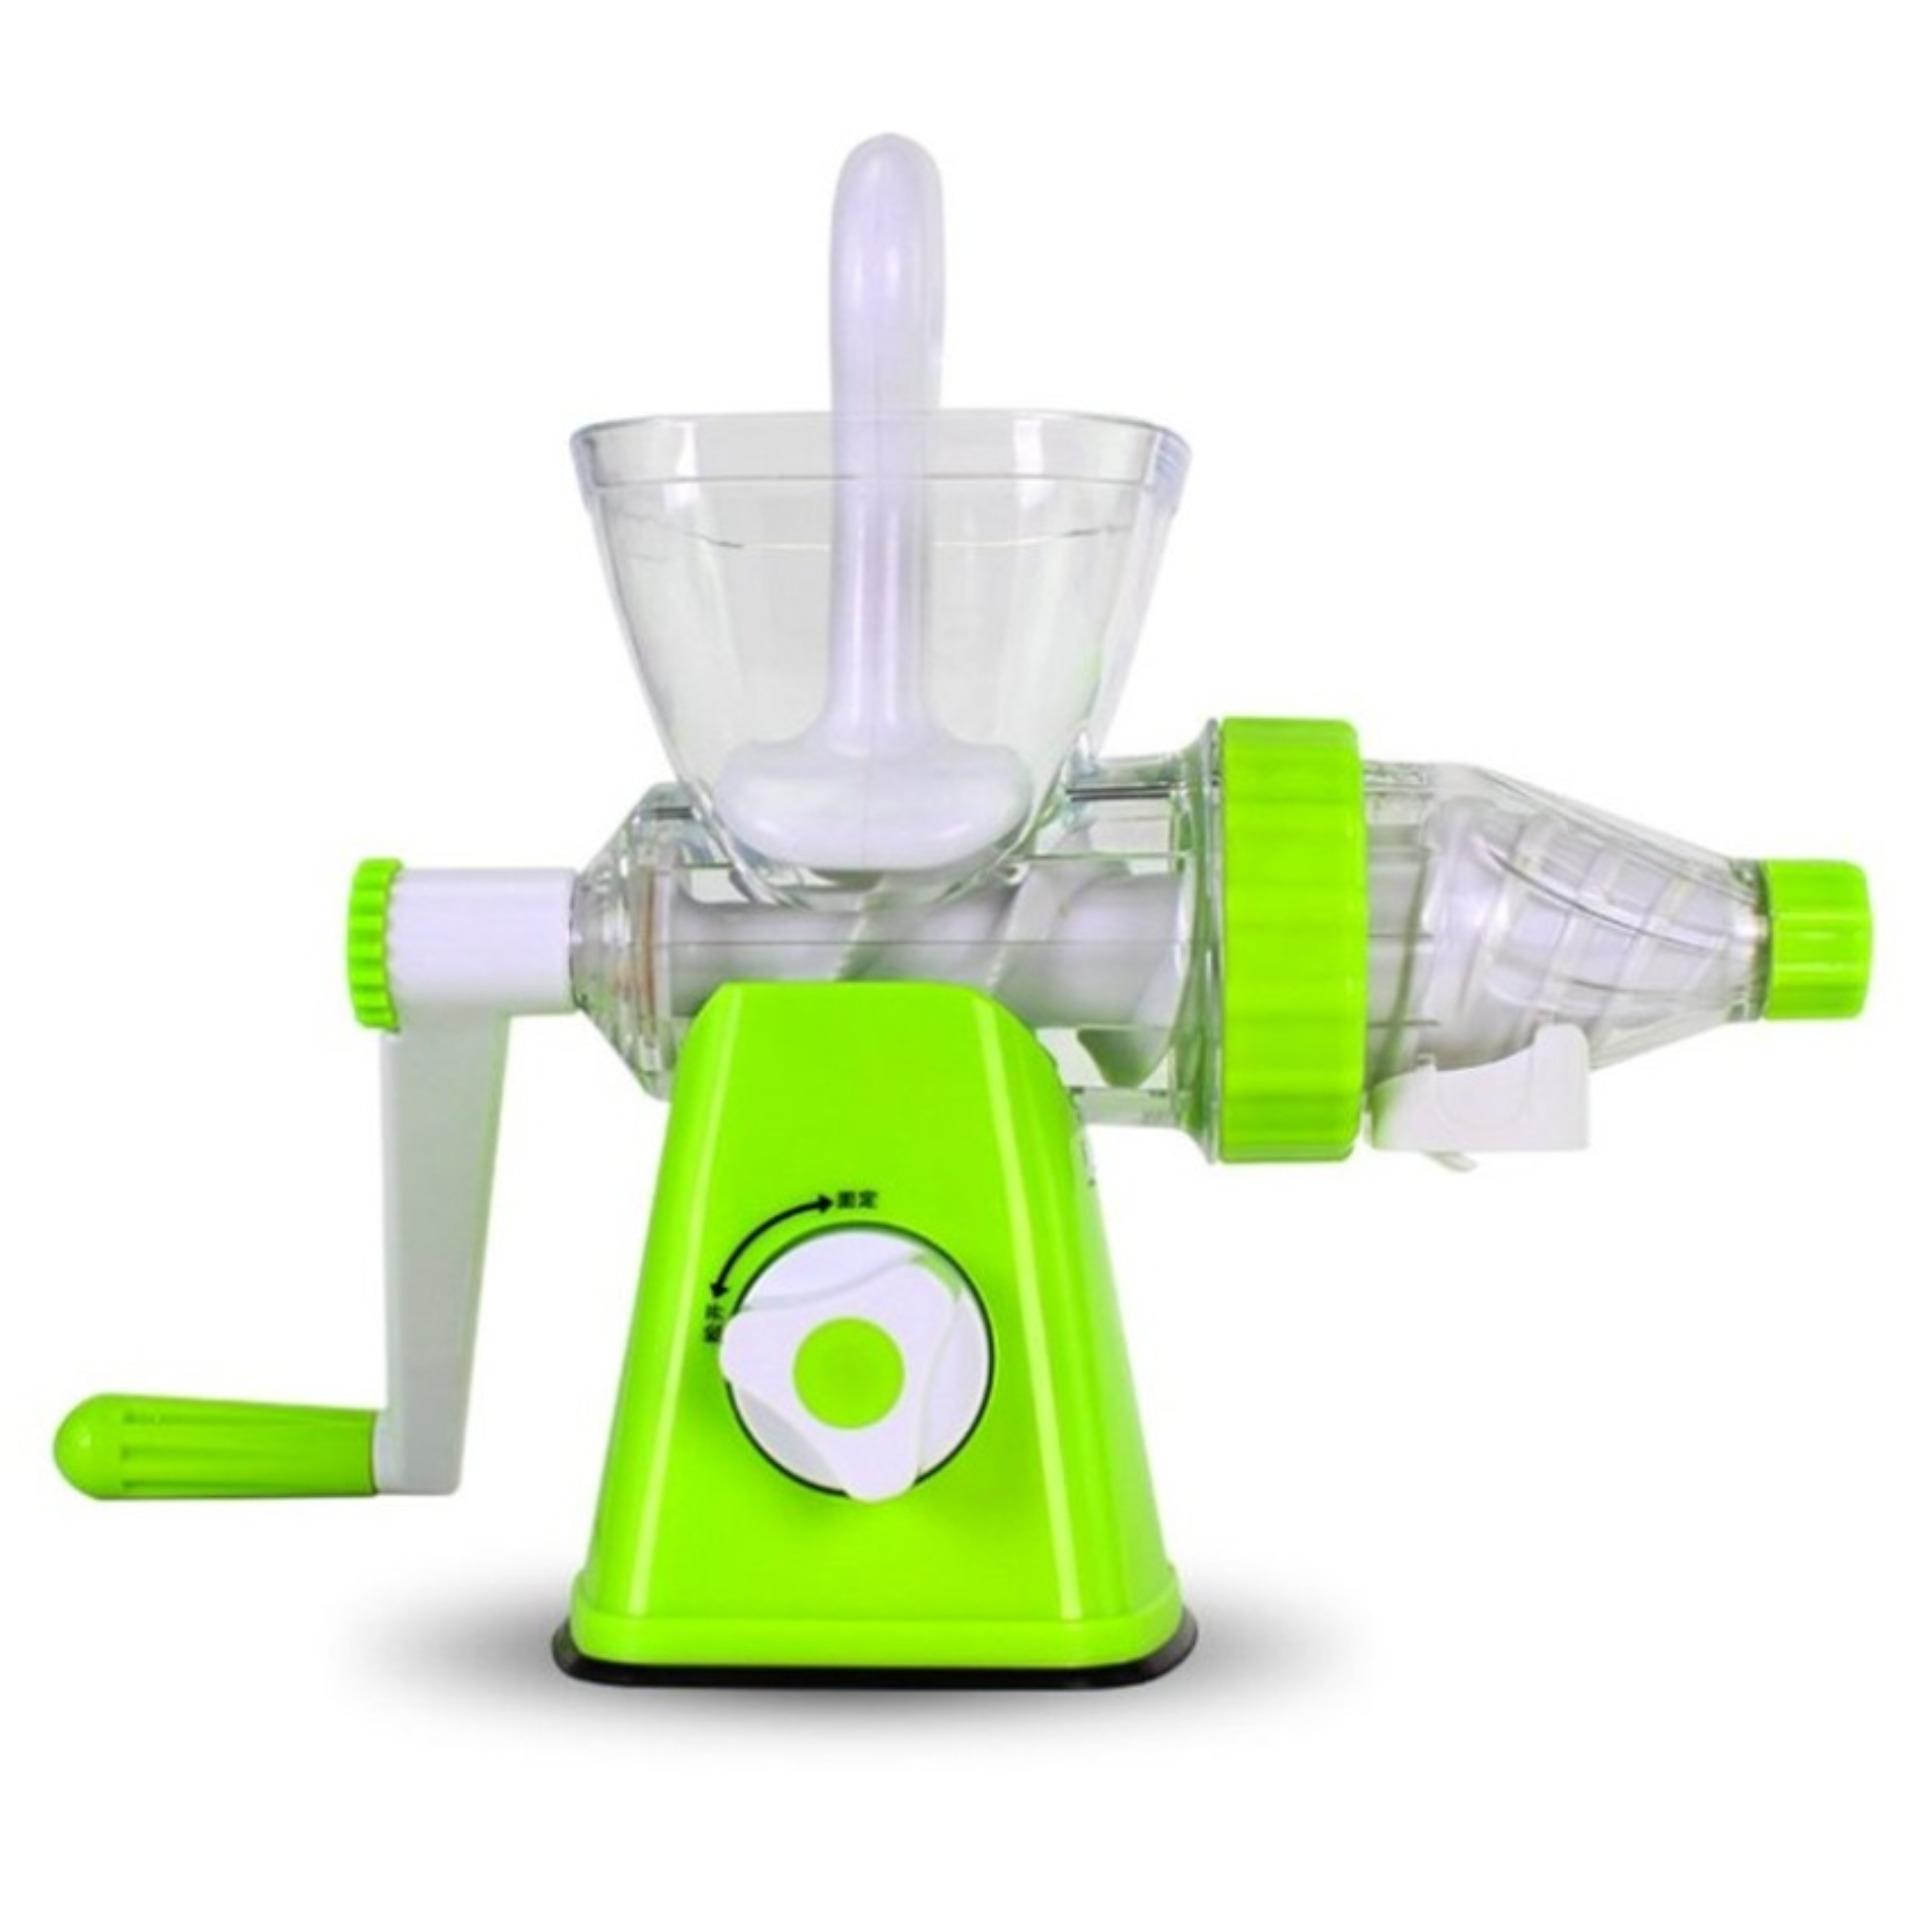 ... Glow shop - Manual Juicer Machine ...